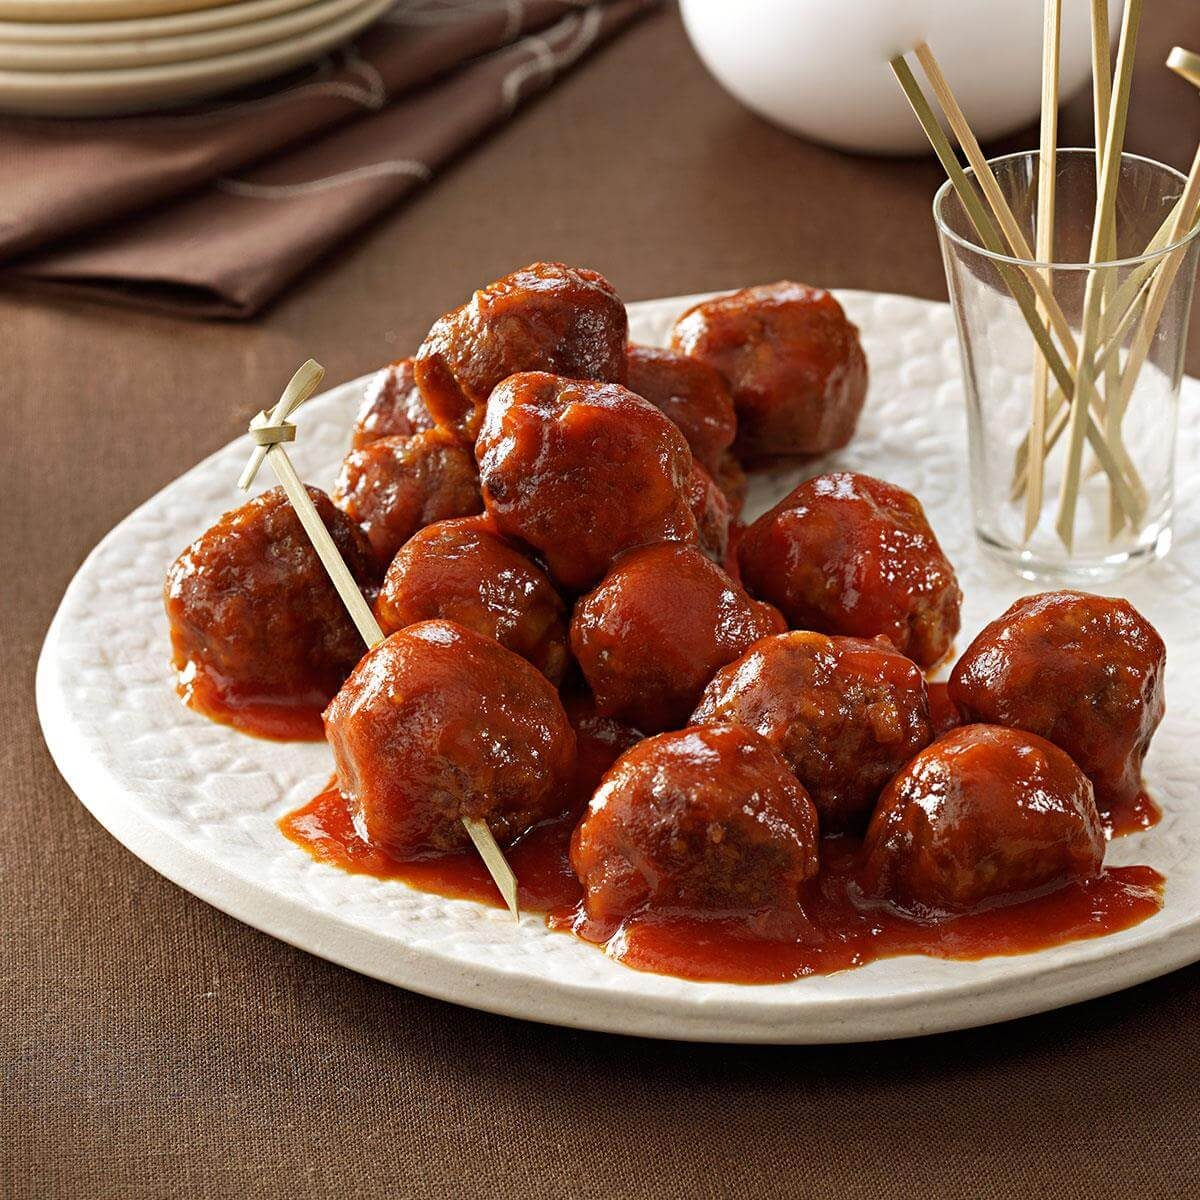 32 Fuss Free Christmas Finger Foods: Tangy And Sweet Meatballs Recipe